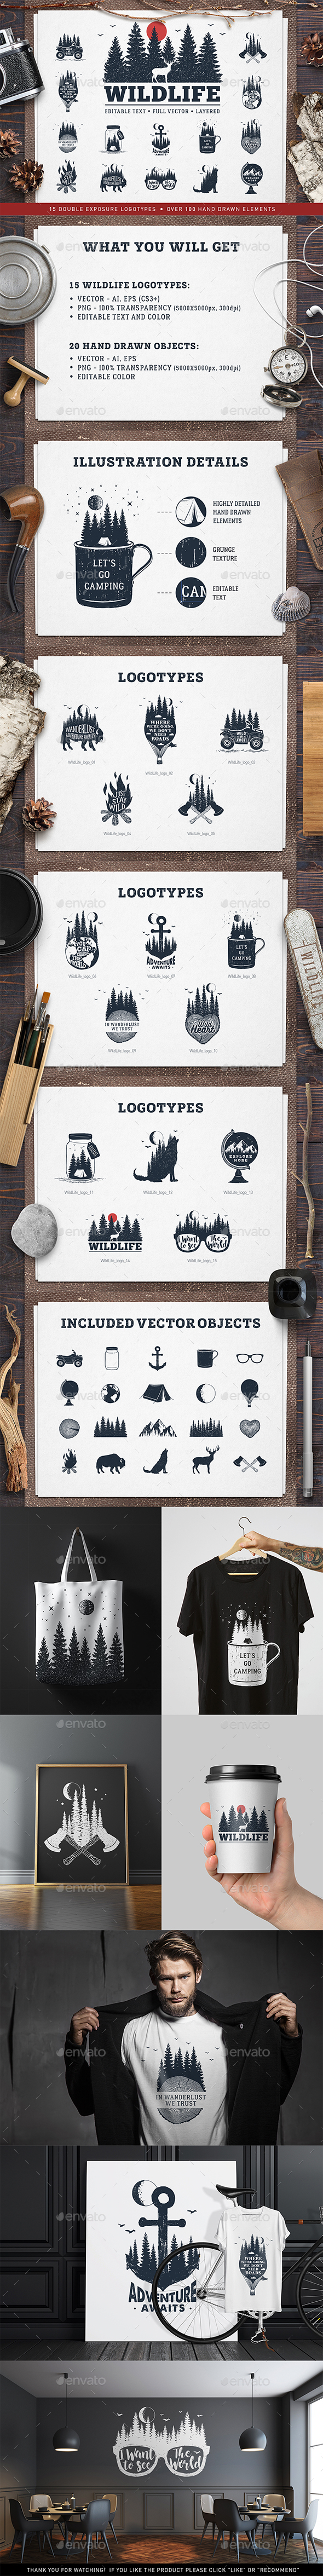 WildLife. 15 Double Exposure Logos - Badges & Stickers Web Elements